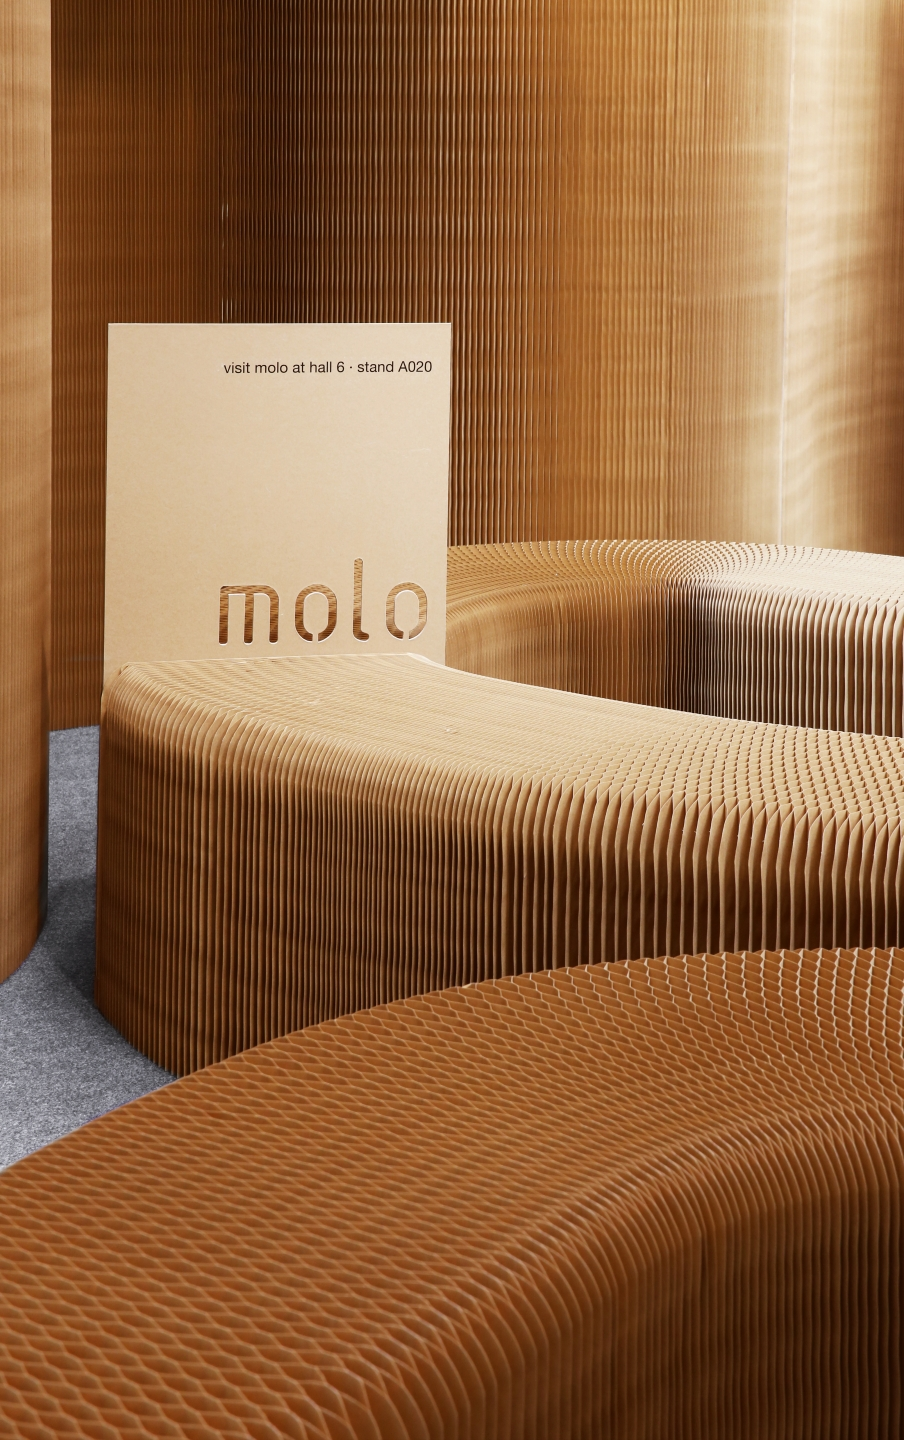 paper bench and modular wall partitions by molo - displaying promotional materials with molo; a sign is sandwiched between the magnetic end panels of two paper benches.